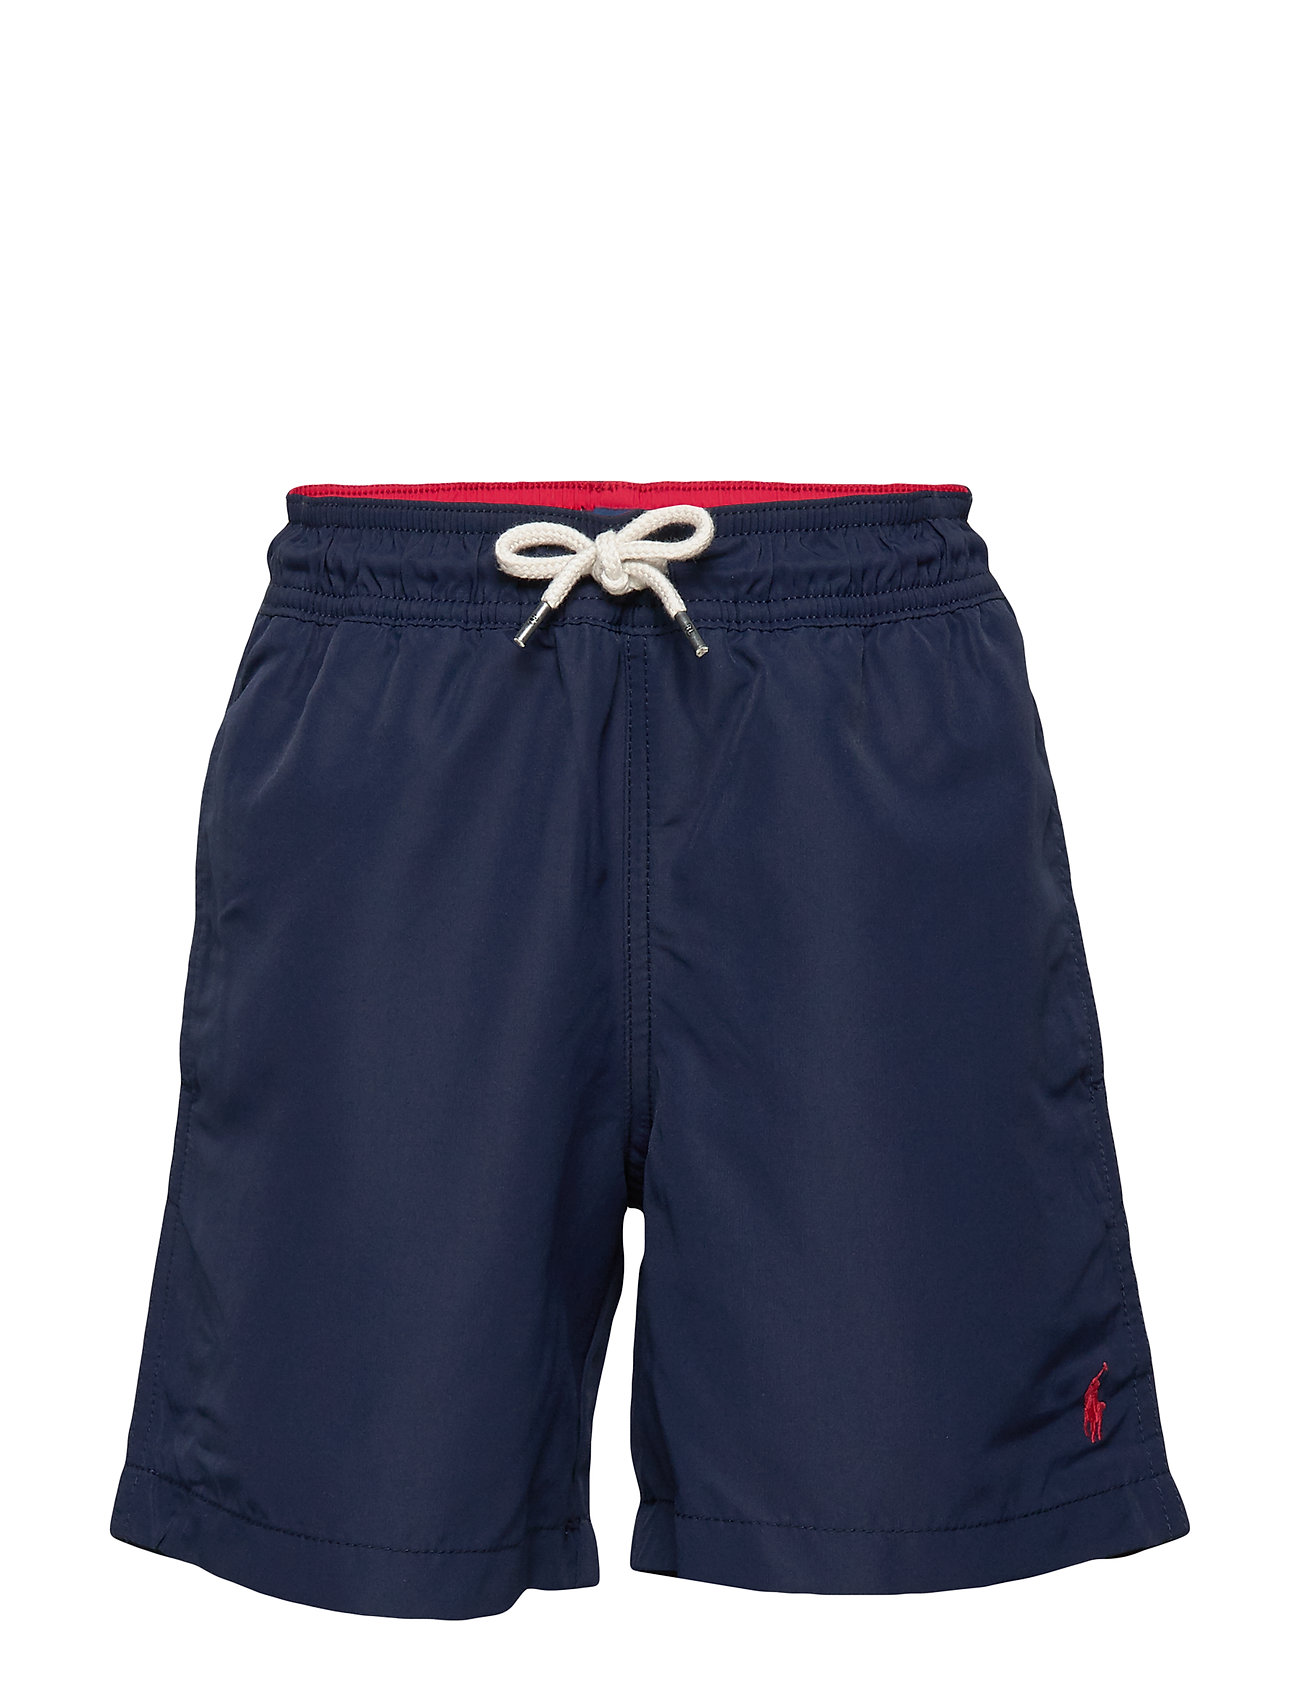 Ralph Lauren Kids Traveler Swim Trunk - FRENCH NAVY